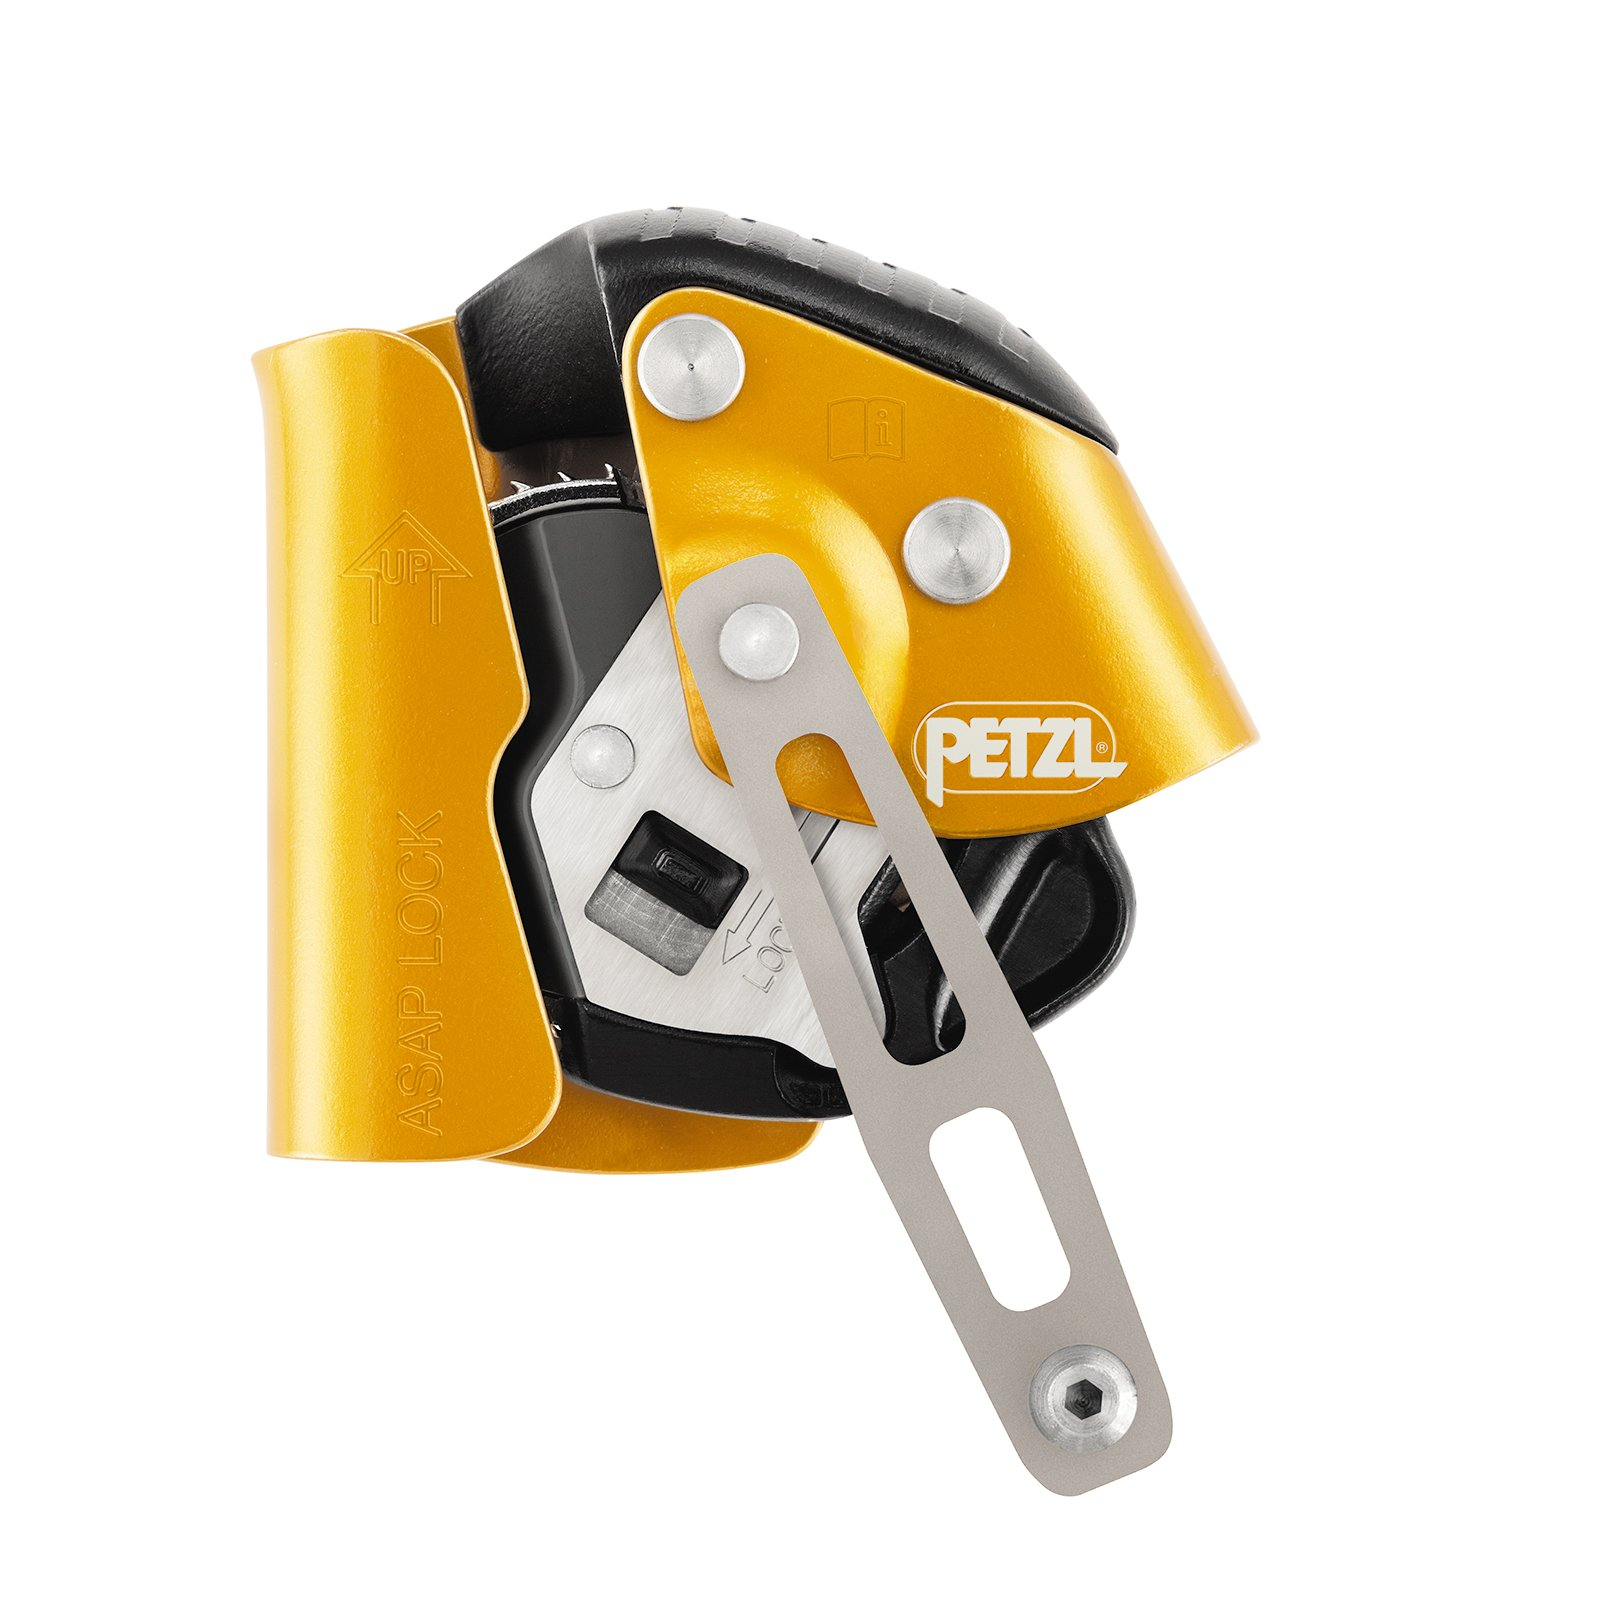 Petzl - ASAP LOCK, Mobile Fall Arrester with Locking Function by Petzl